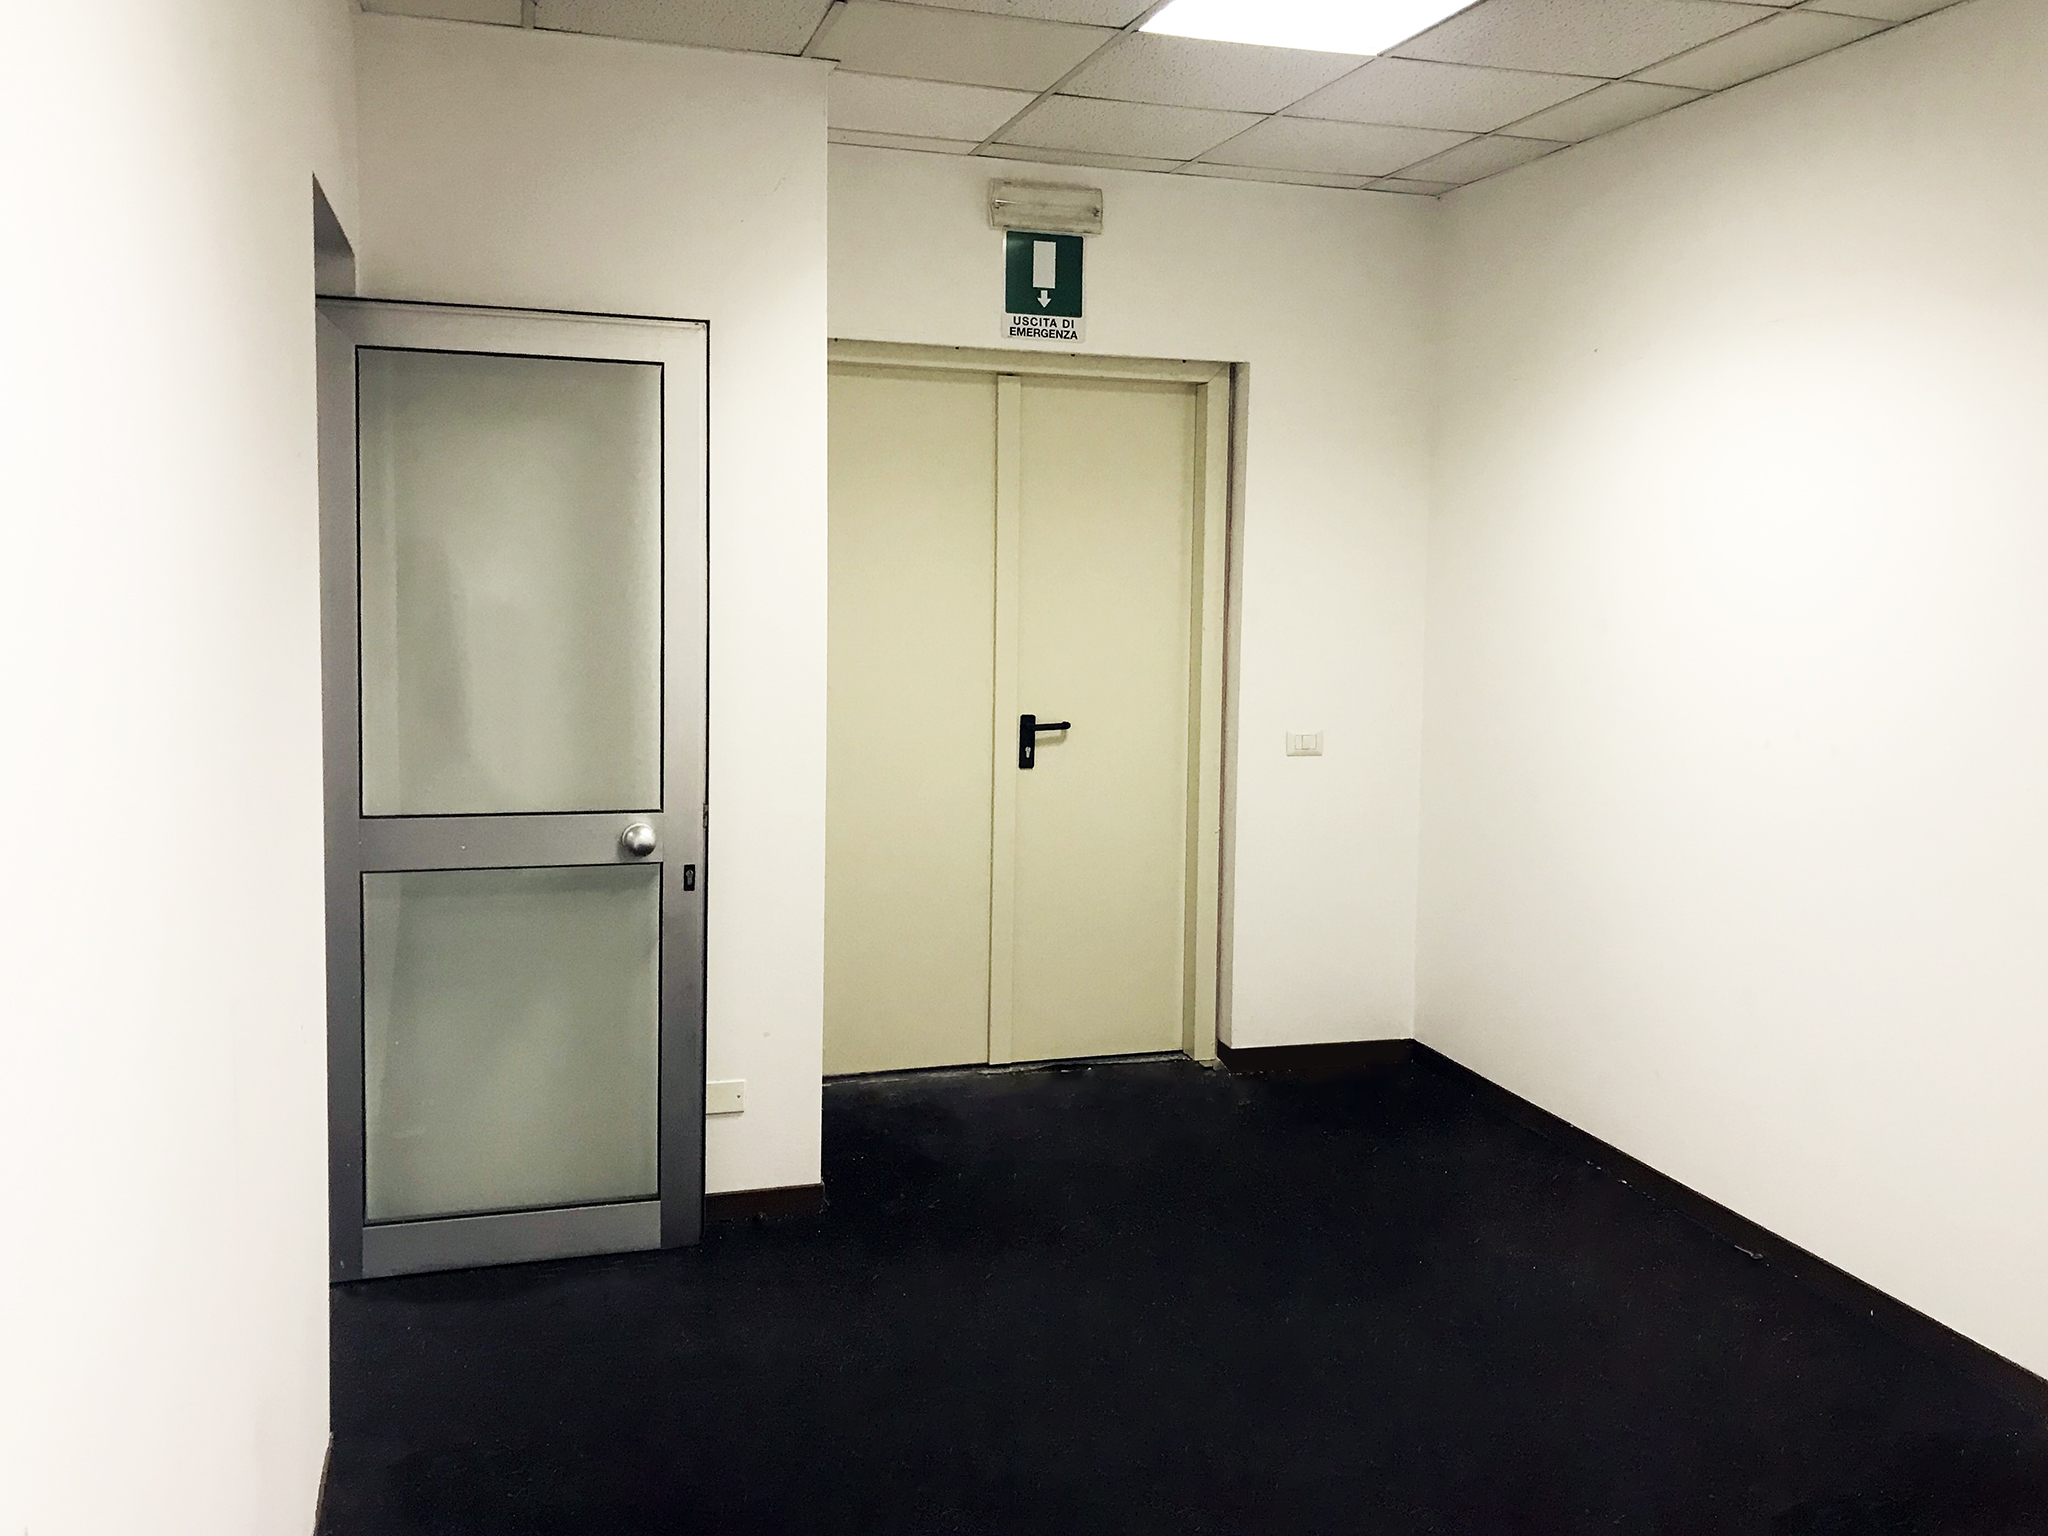 Second entry Warehouse 125 m² (1345 ft²) to rent in Milan c/o Atlantic Business Center